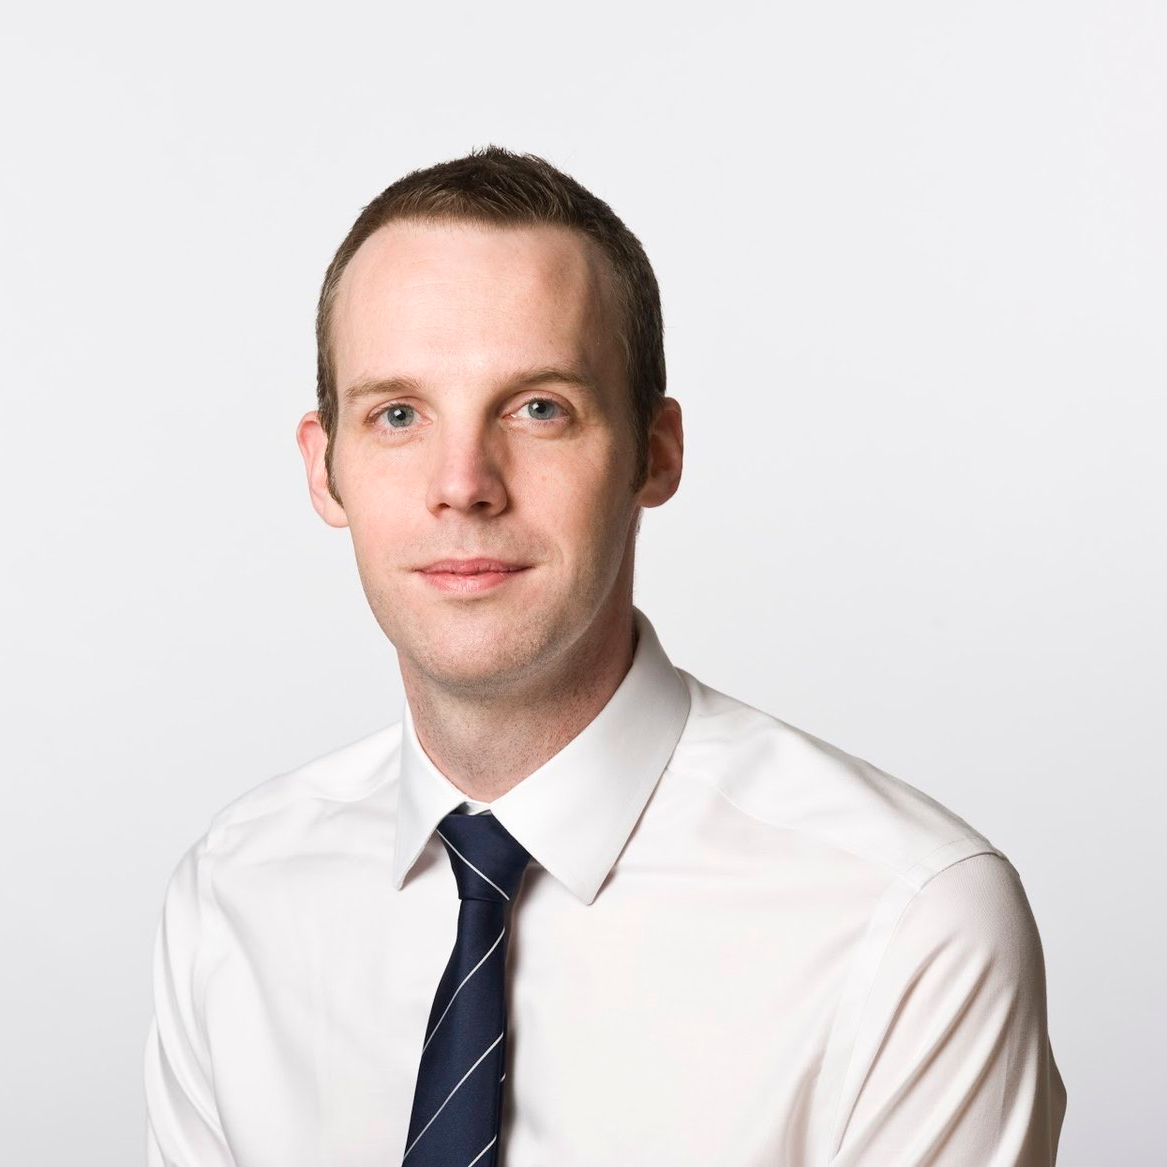 Nick Cook, Head of RegTech and Advanced Analytics at FCA